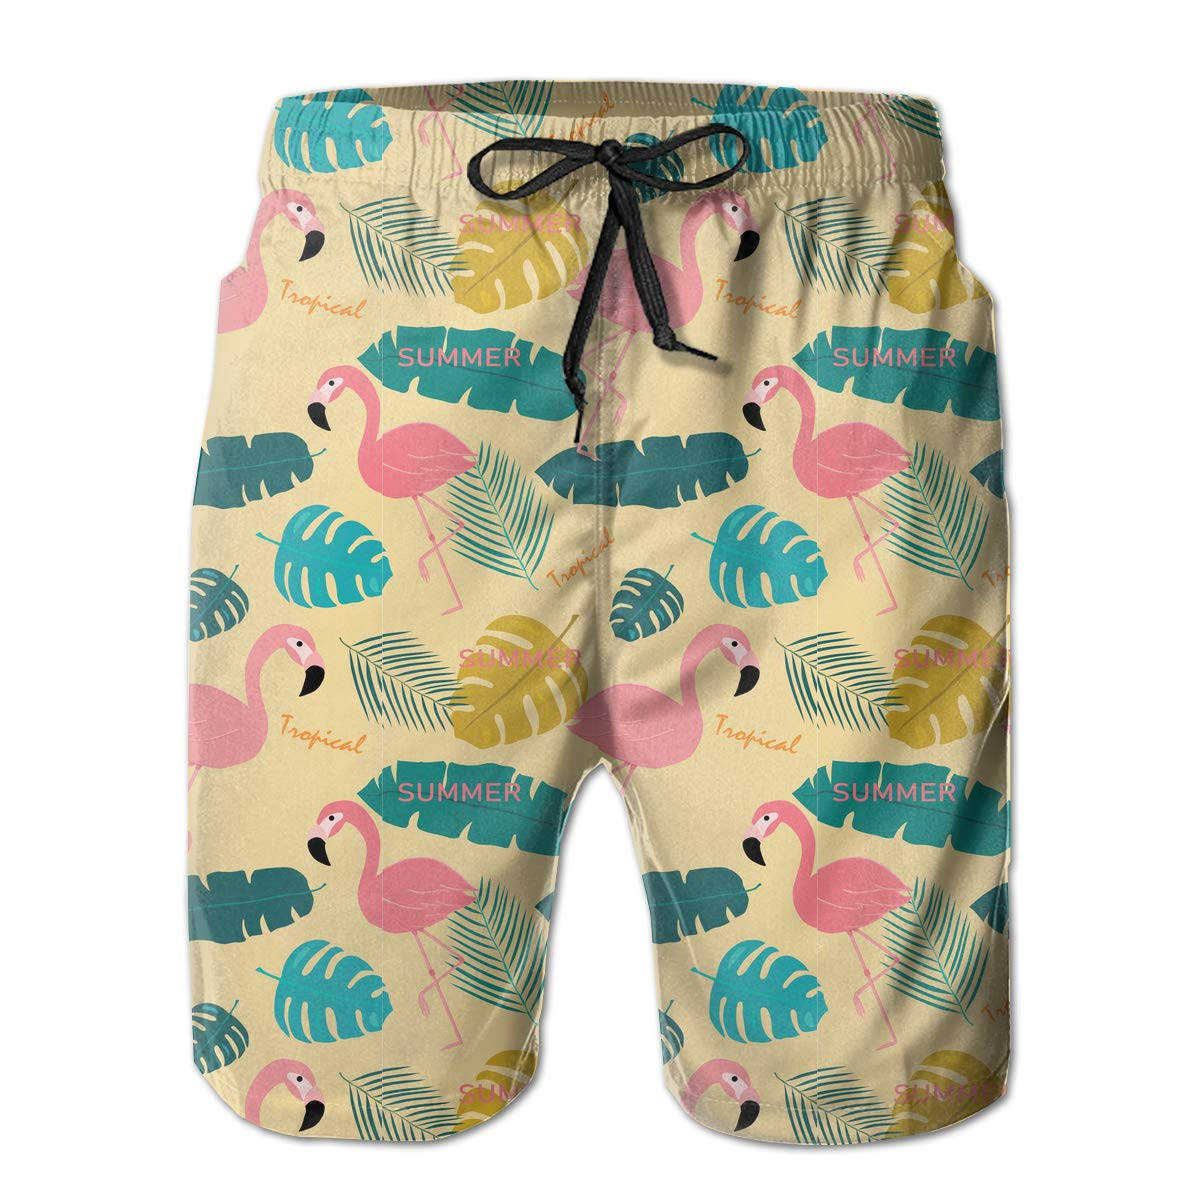 Polyester Pink Flamingo and Topical Leaves Pattern Swimsuit with Pockets Xk7@KU Mens Quick Dry Beach Shorts